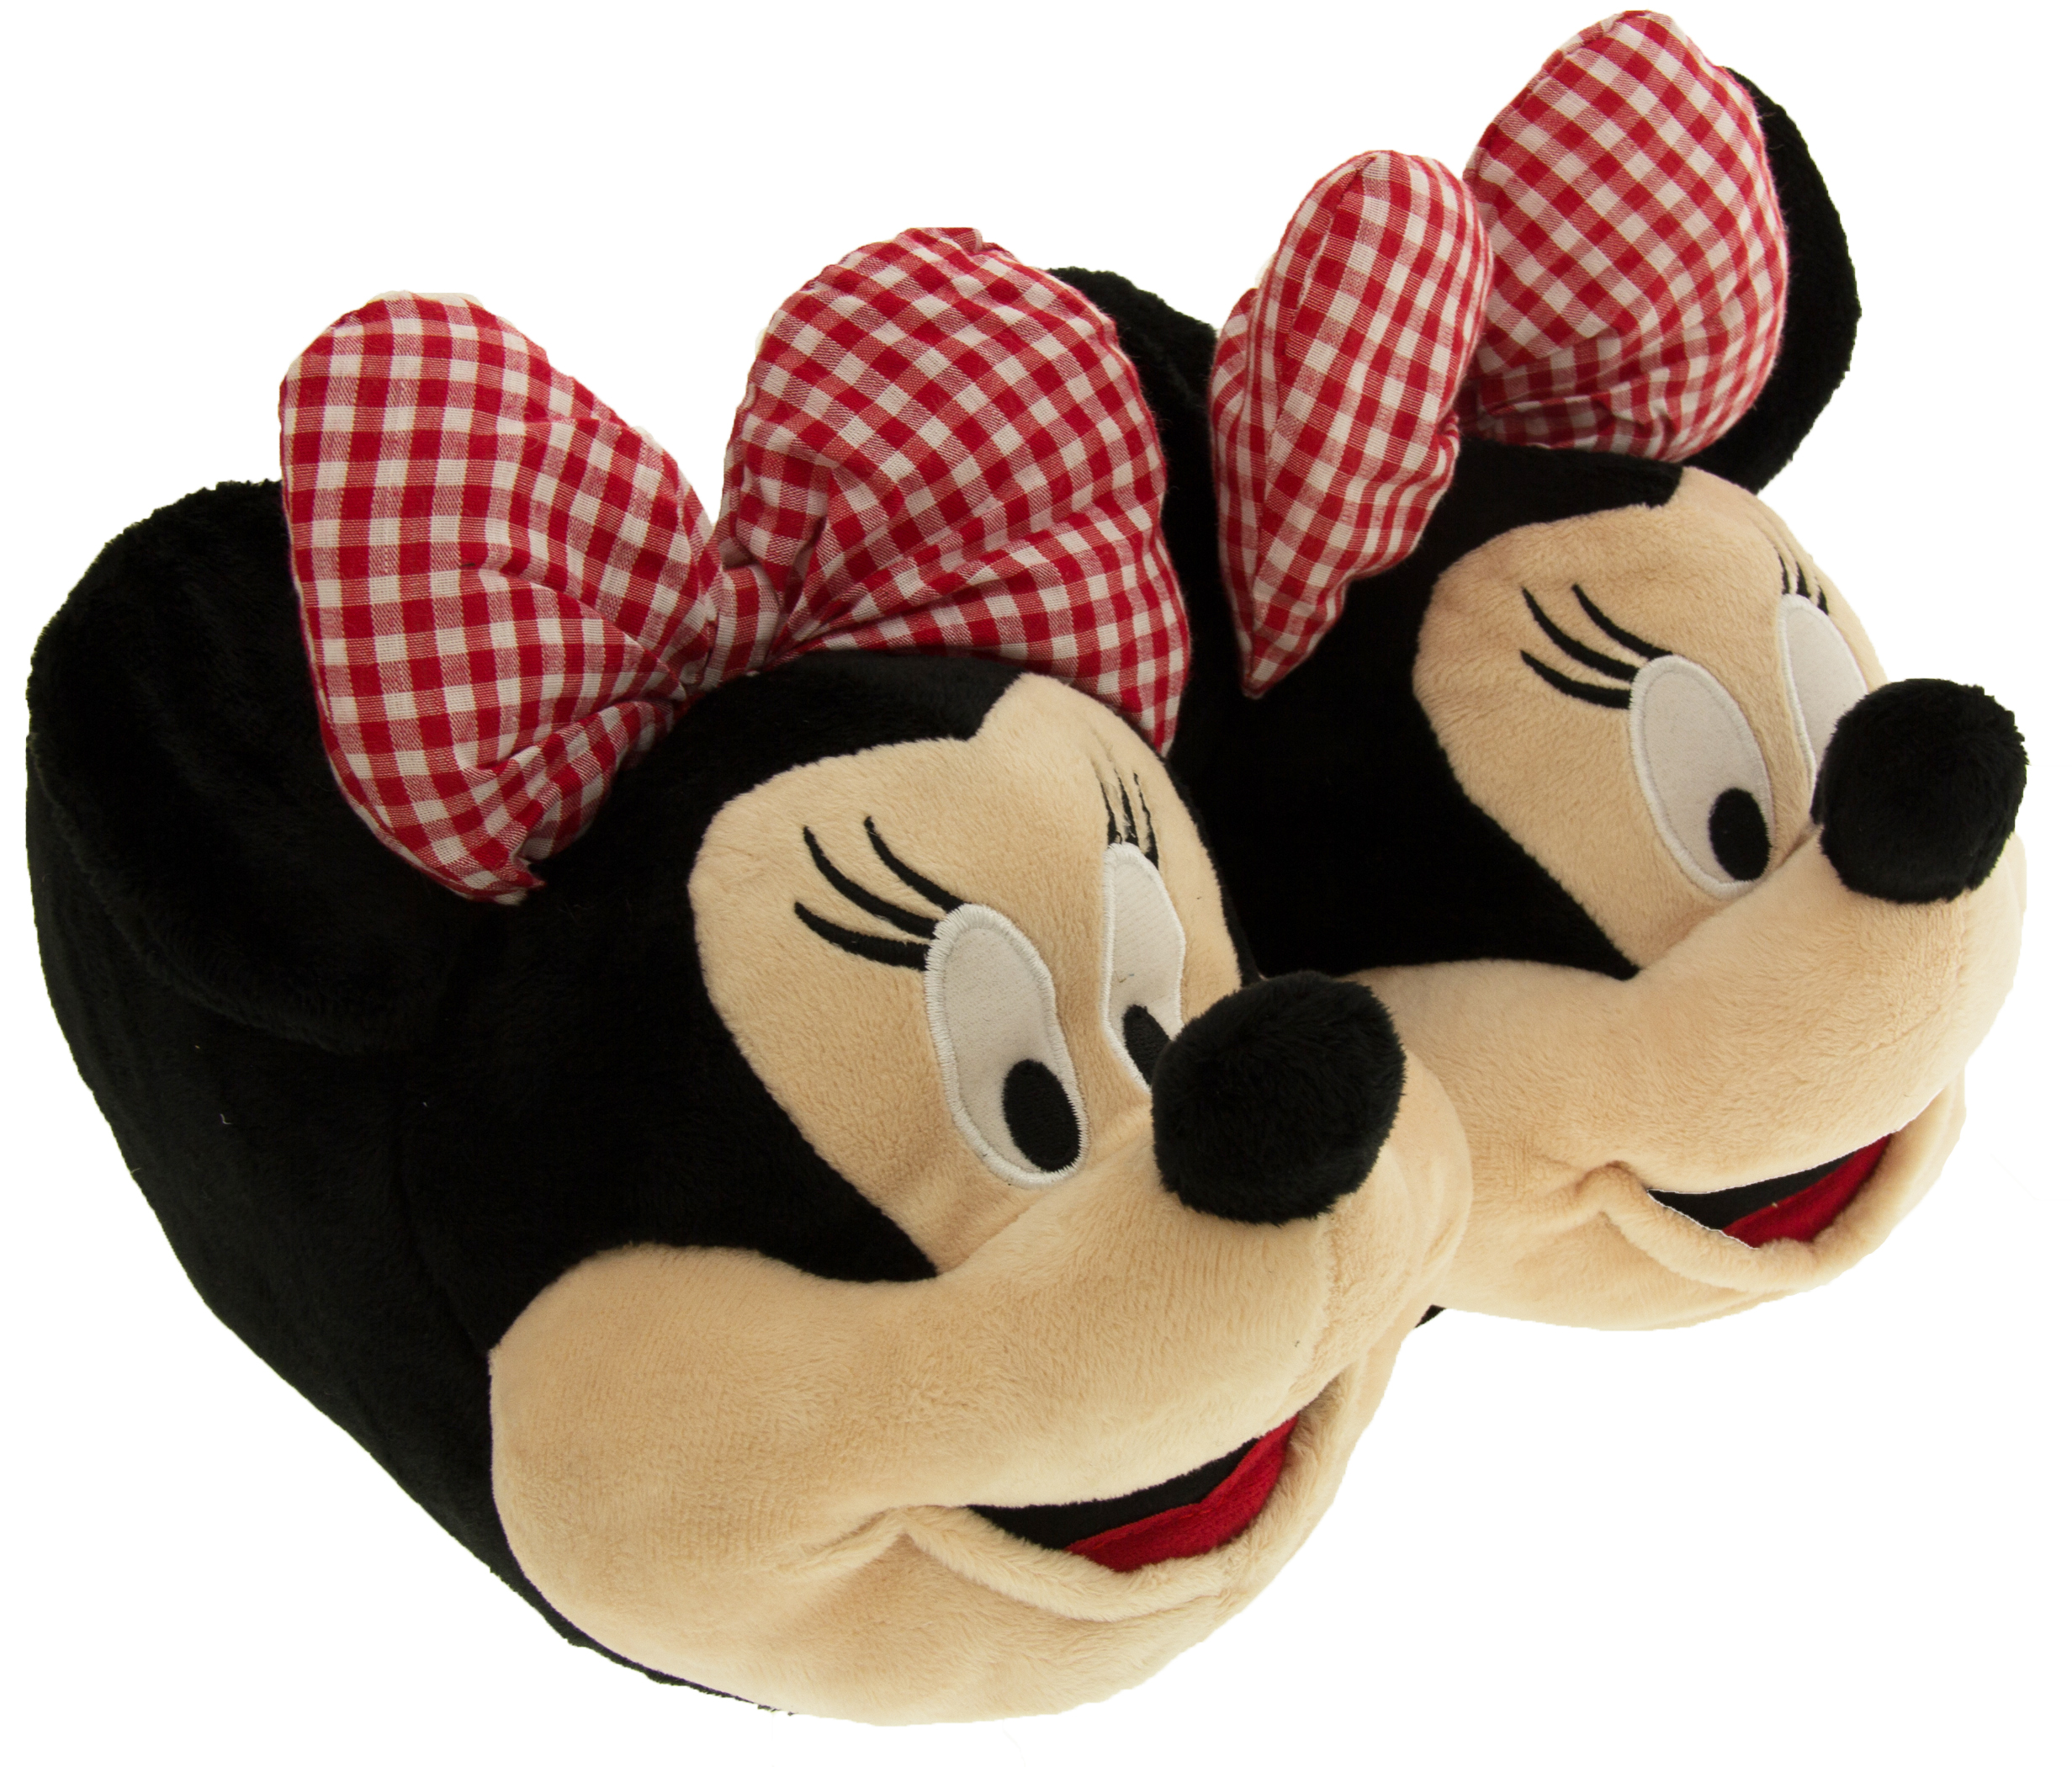 ladies disney novelty character slippers goofy mickey or minnie ebay. Black Bedroom Furniture Sets. Home Design Ideas